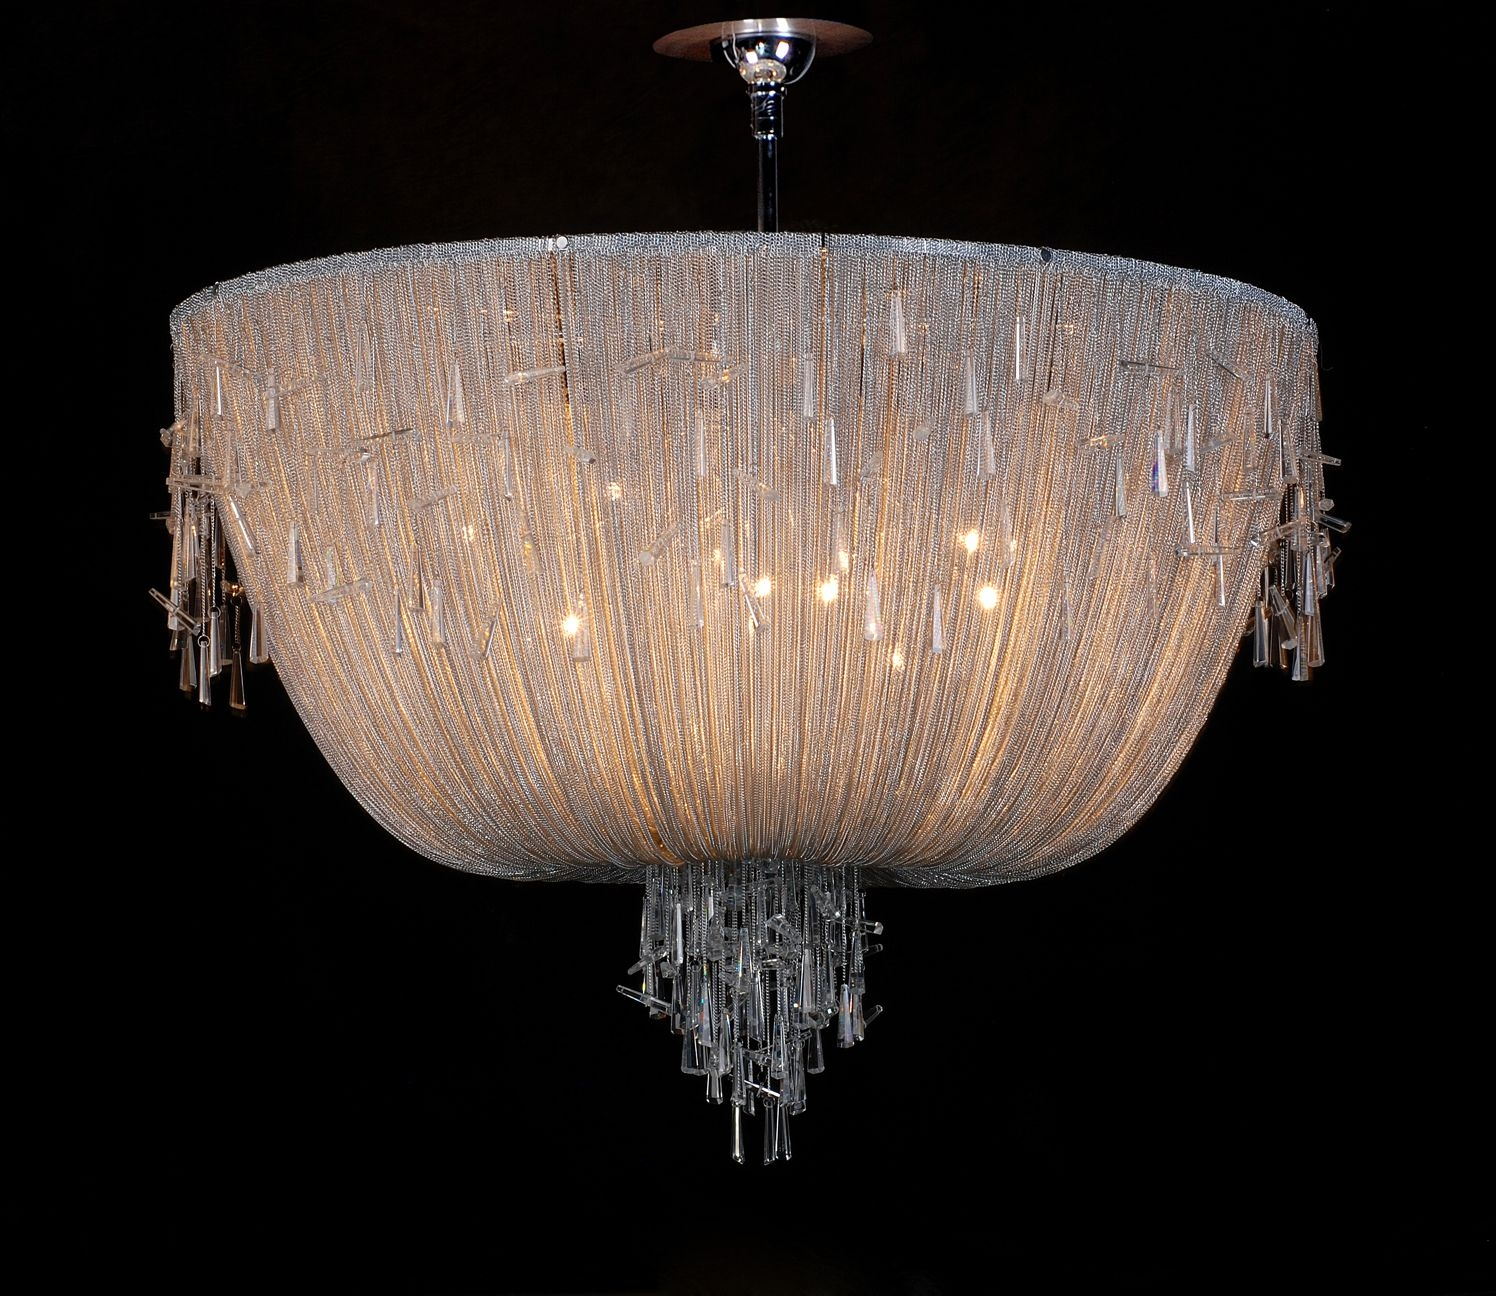 Popular Photo of Italian Chandeliers Contemporary